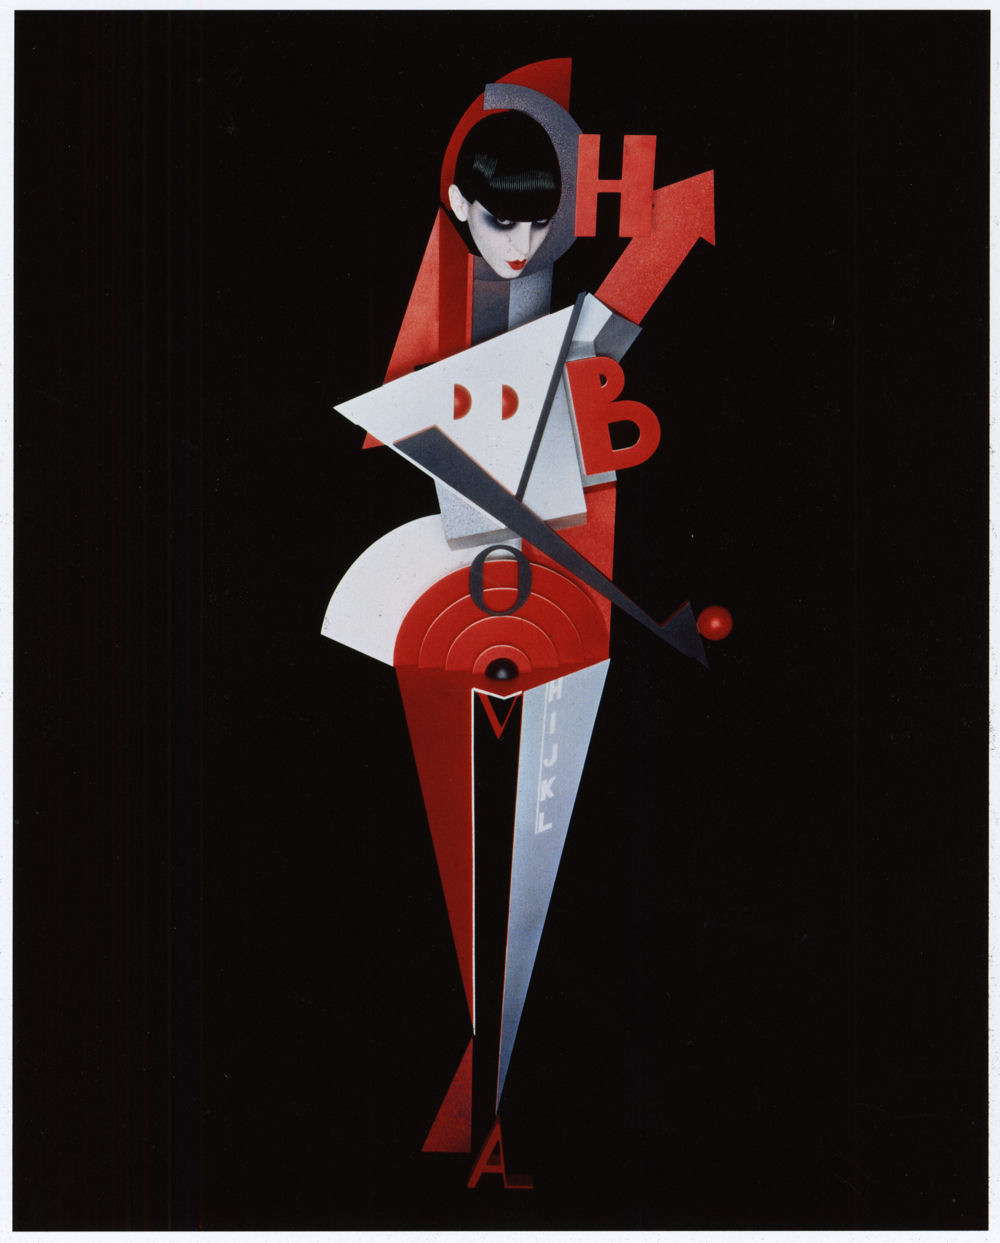 serge lutens Composition Lettriste Noir Rouge and Blanc Louise 1989